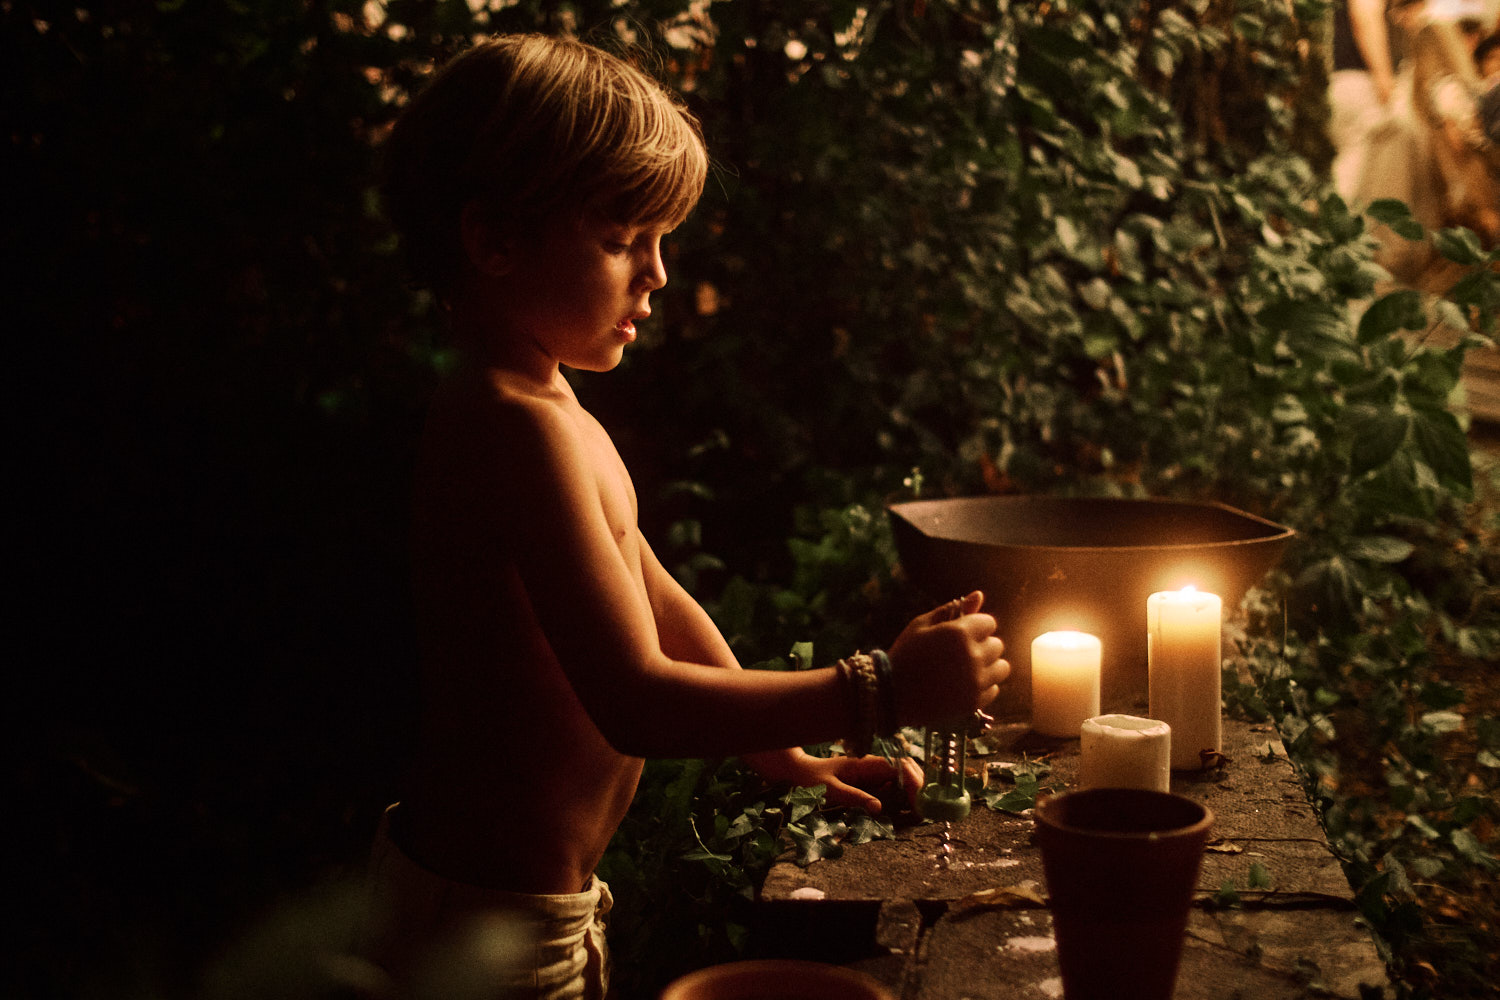 A child is illuminated by candle light at an outdoor wedding reception